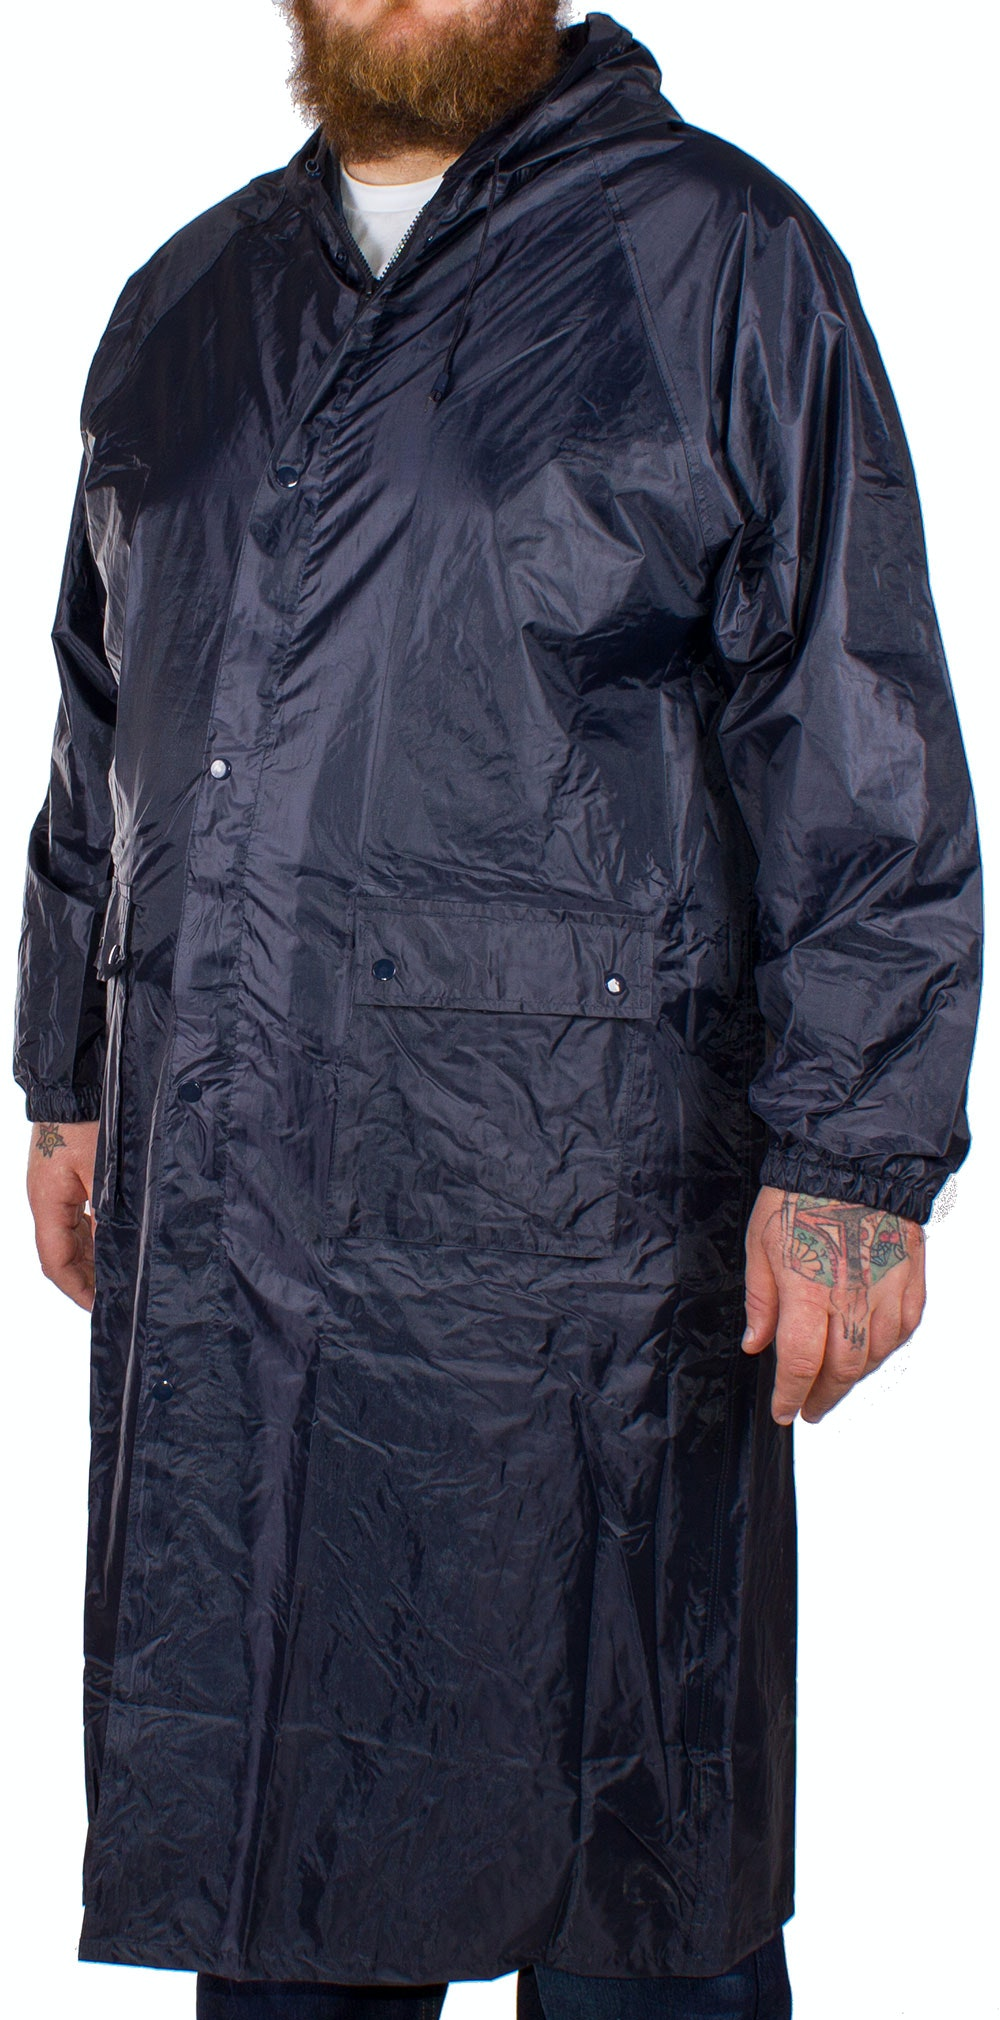 Baum Waterproof Long Coat Navy